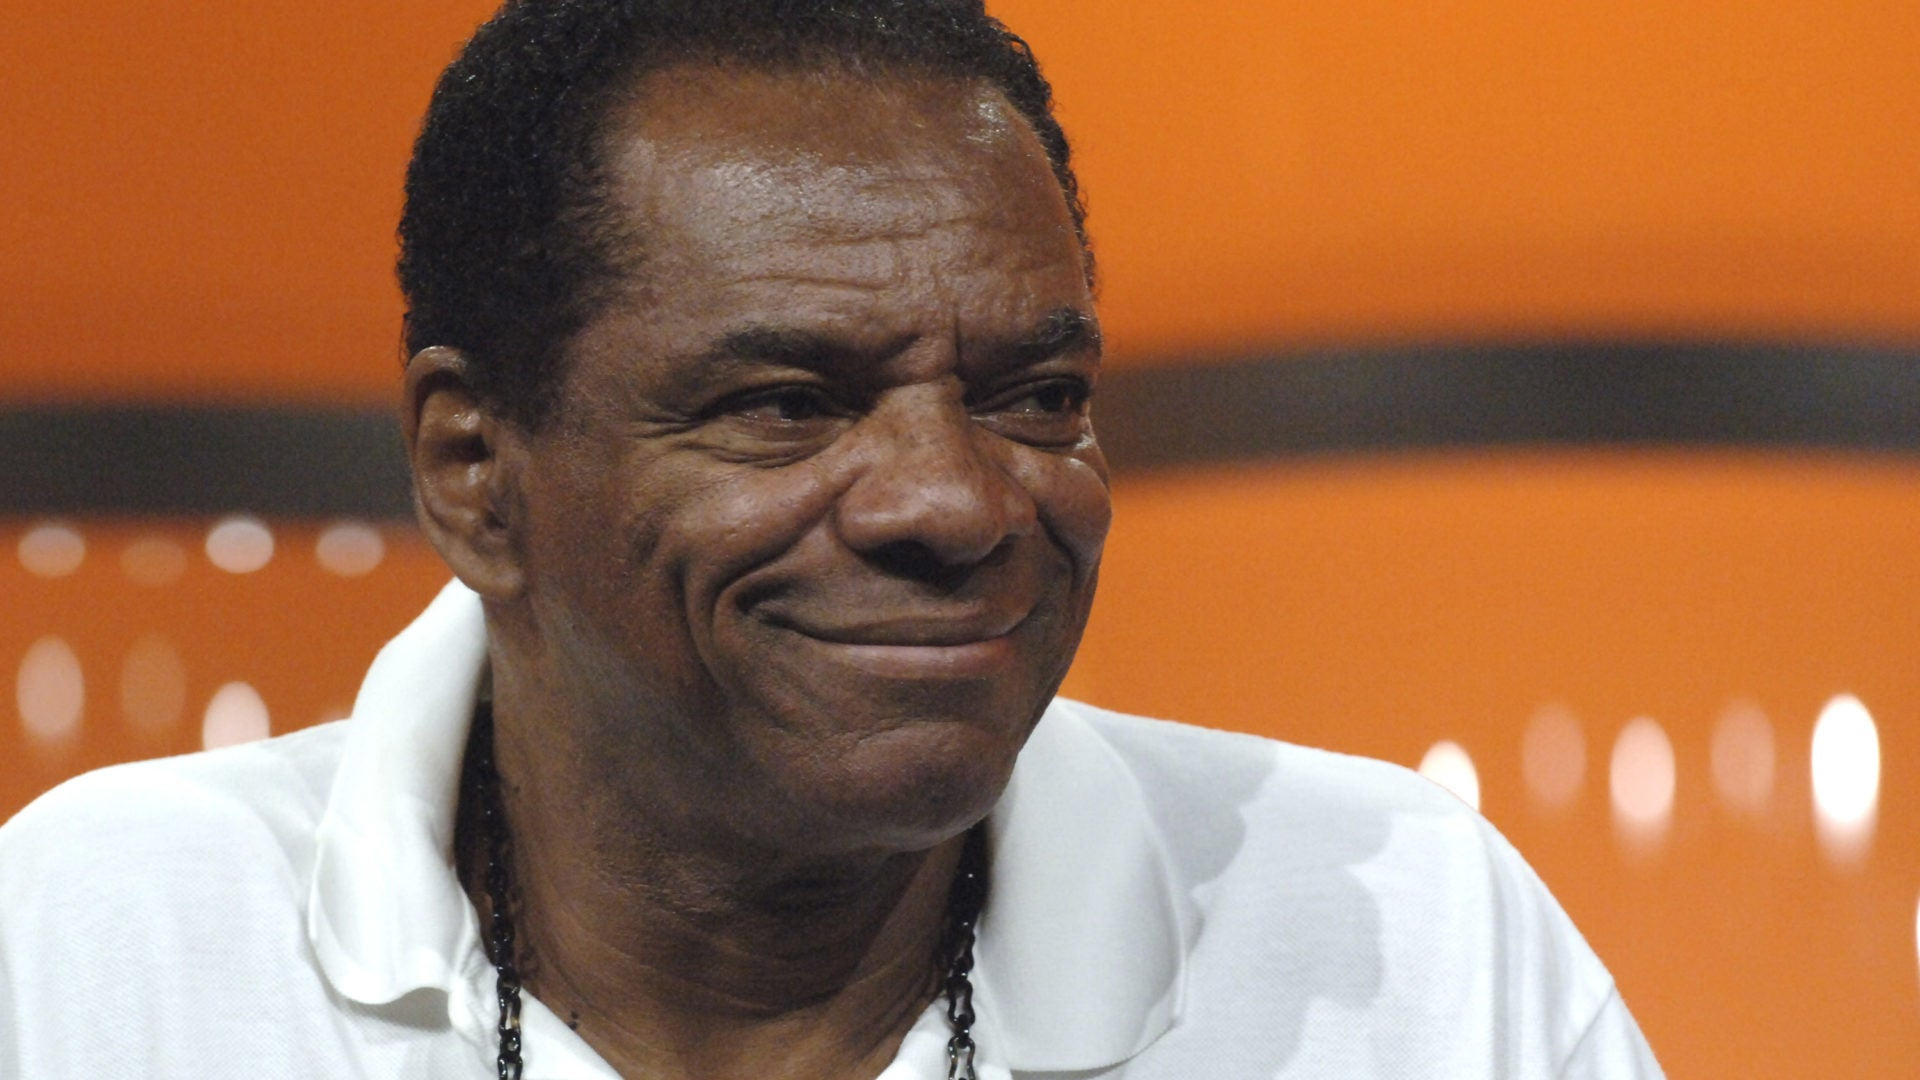 John Witherspoon Dies At 77